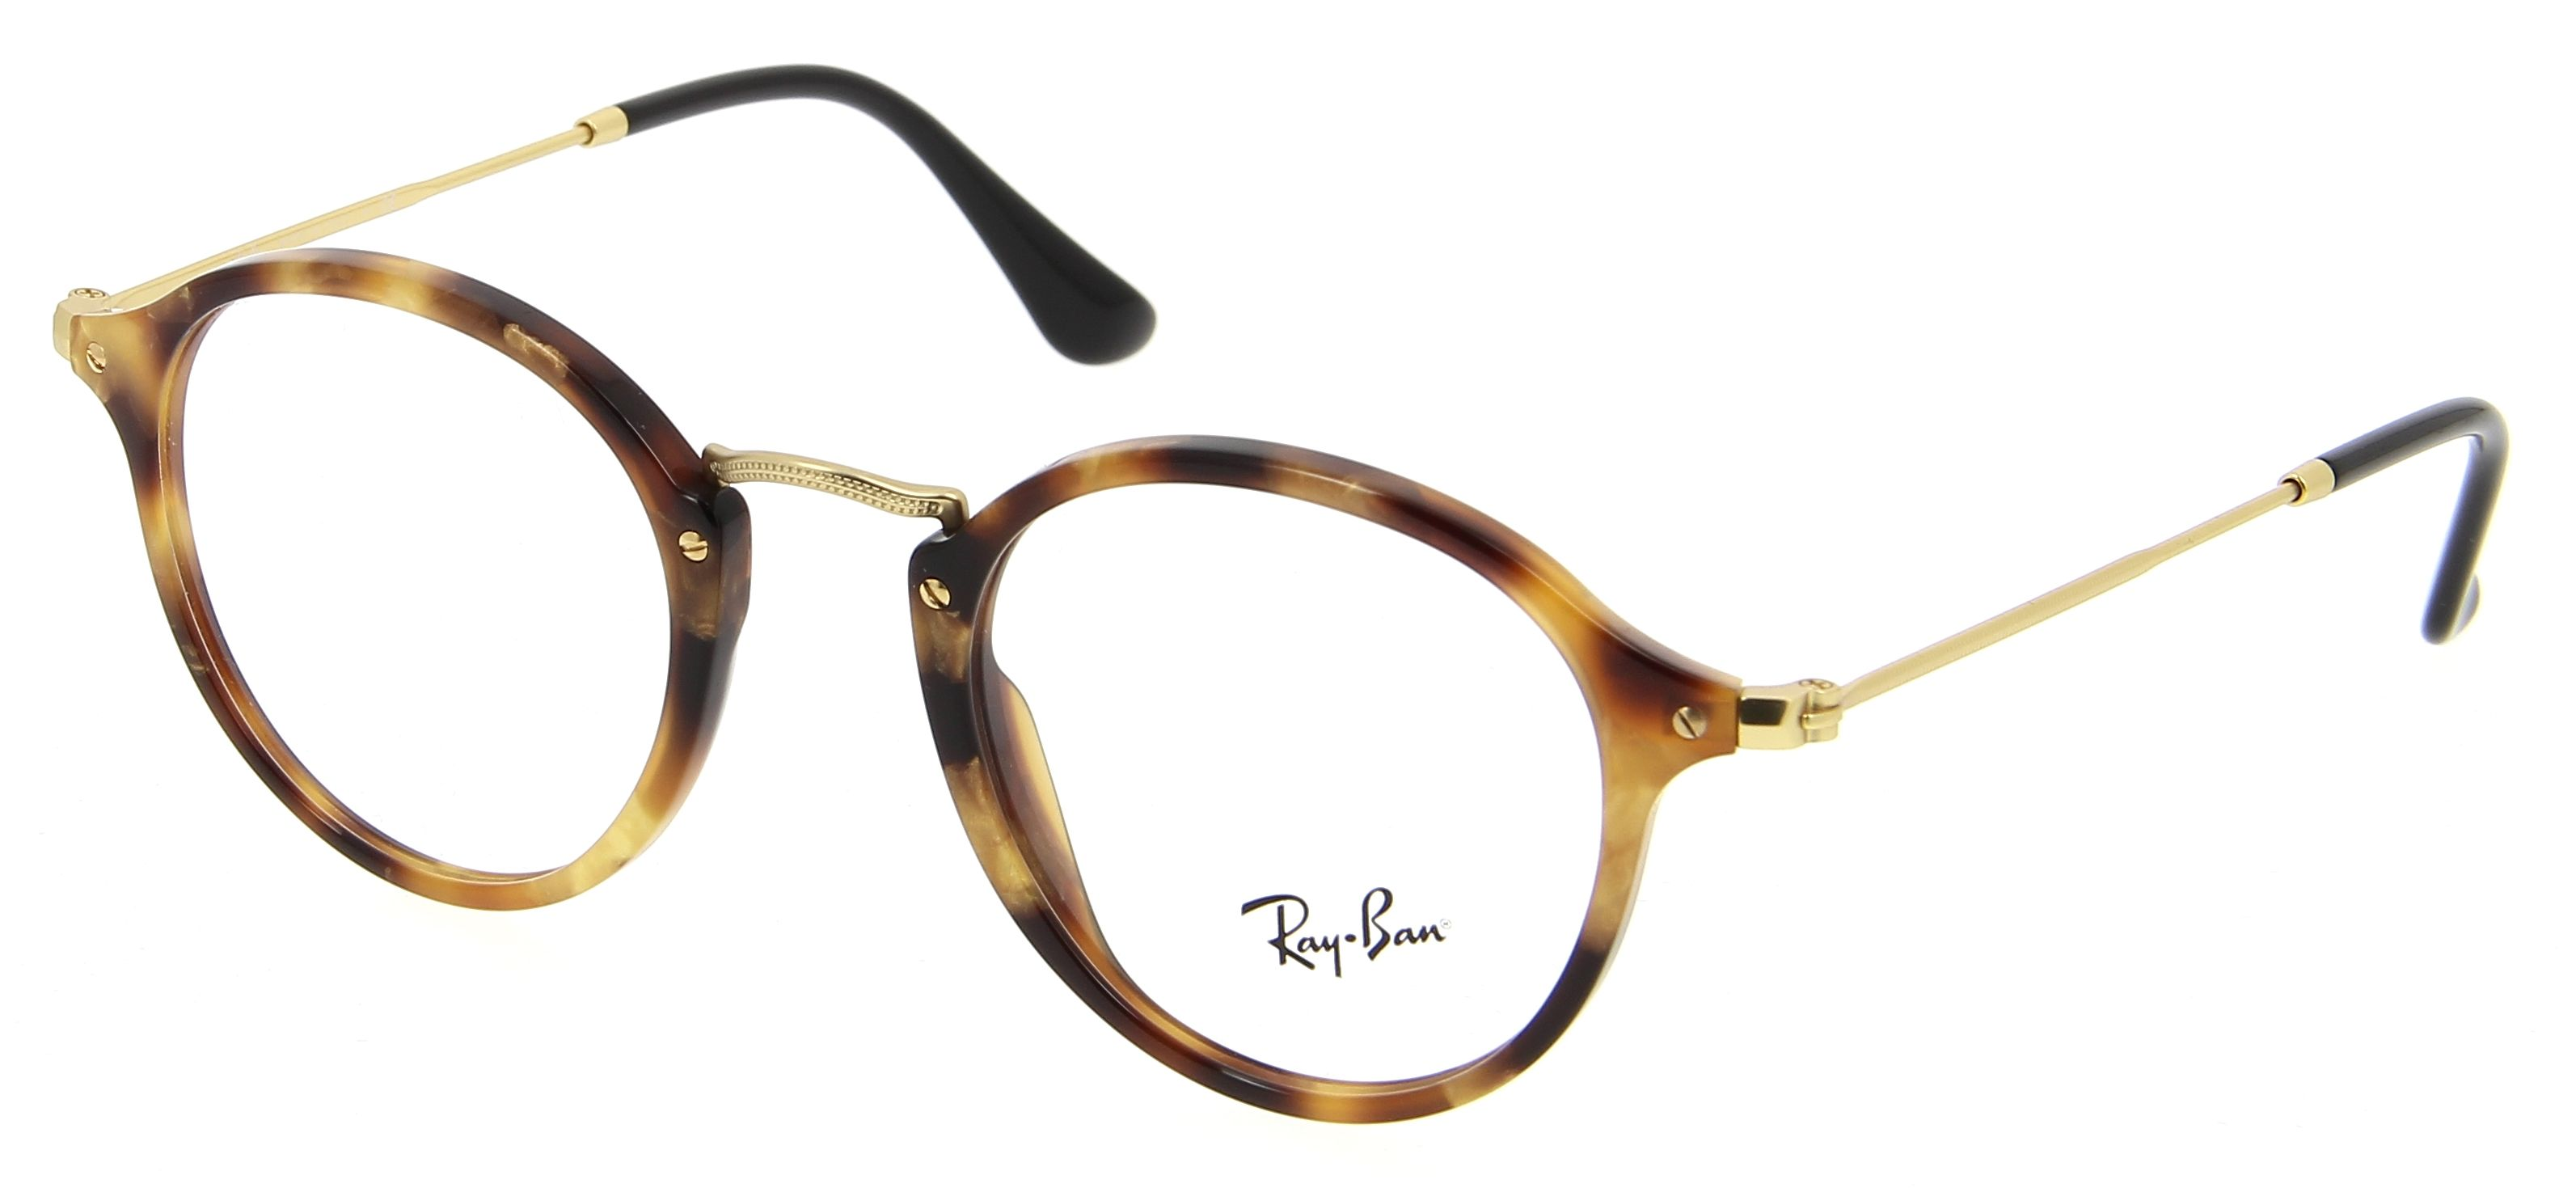 Ray-ban rx 2447v 5494 47 21 en 2019   kdo, wishlist   Pinterest ... 0e5728fda77f